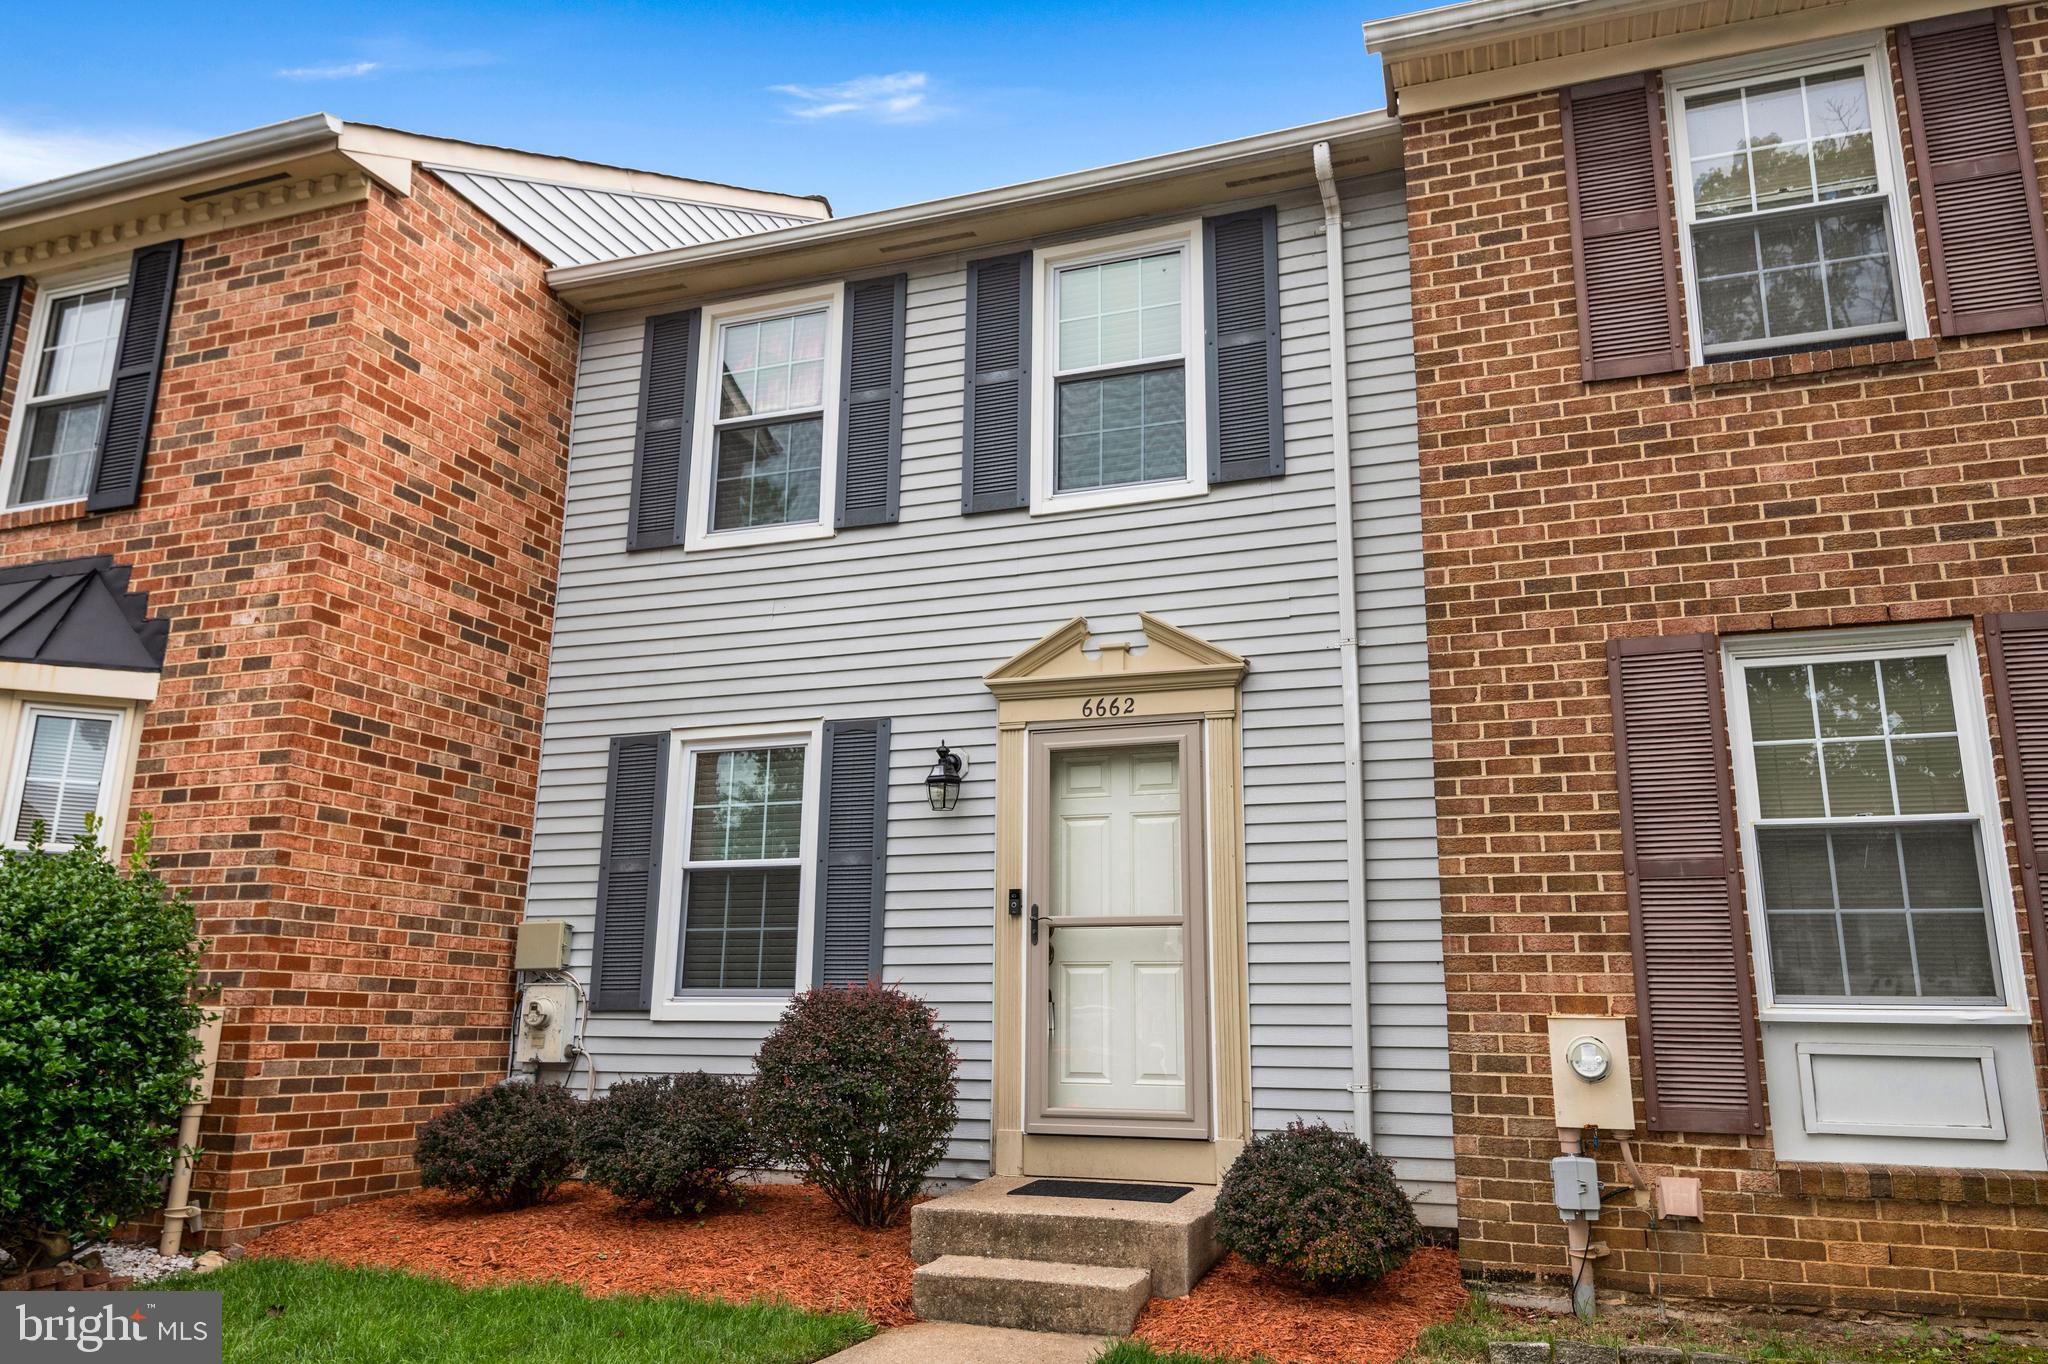 OFFER DEADLINE:  Friday 9/17 at 6PM.  Huge price improvement! Schedule your appointment today before this home flies off the market! Remodeled 3 Bed 1.5 Bath home in Marble Hill Community.  Updates include 2021: new deck, home freshly painted. 2020: new roof, new Kitchen appliances, new windows blinds, new storm door. 2019: new water heater. 2018: new fence.